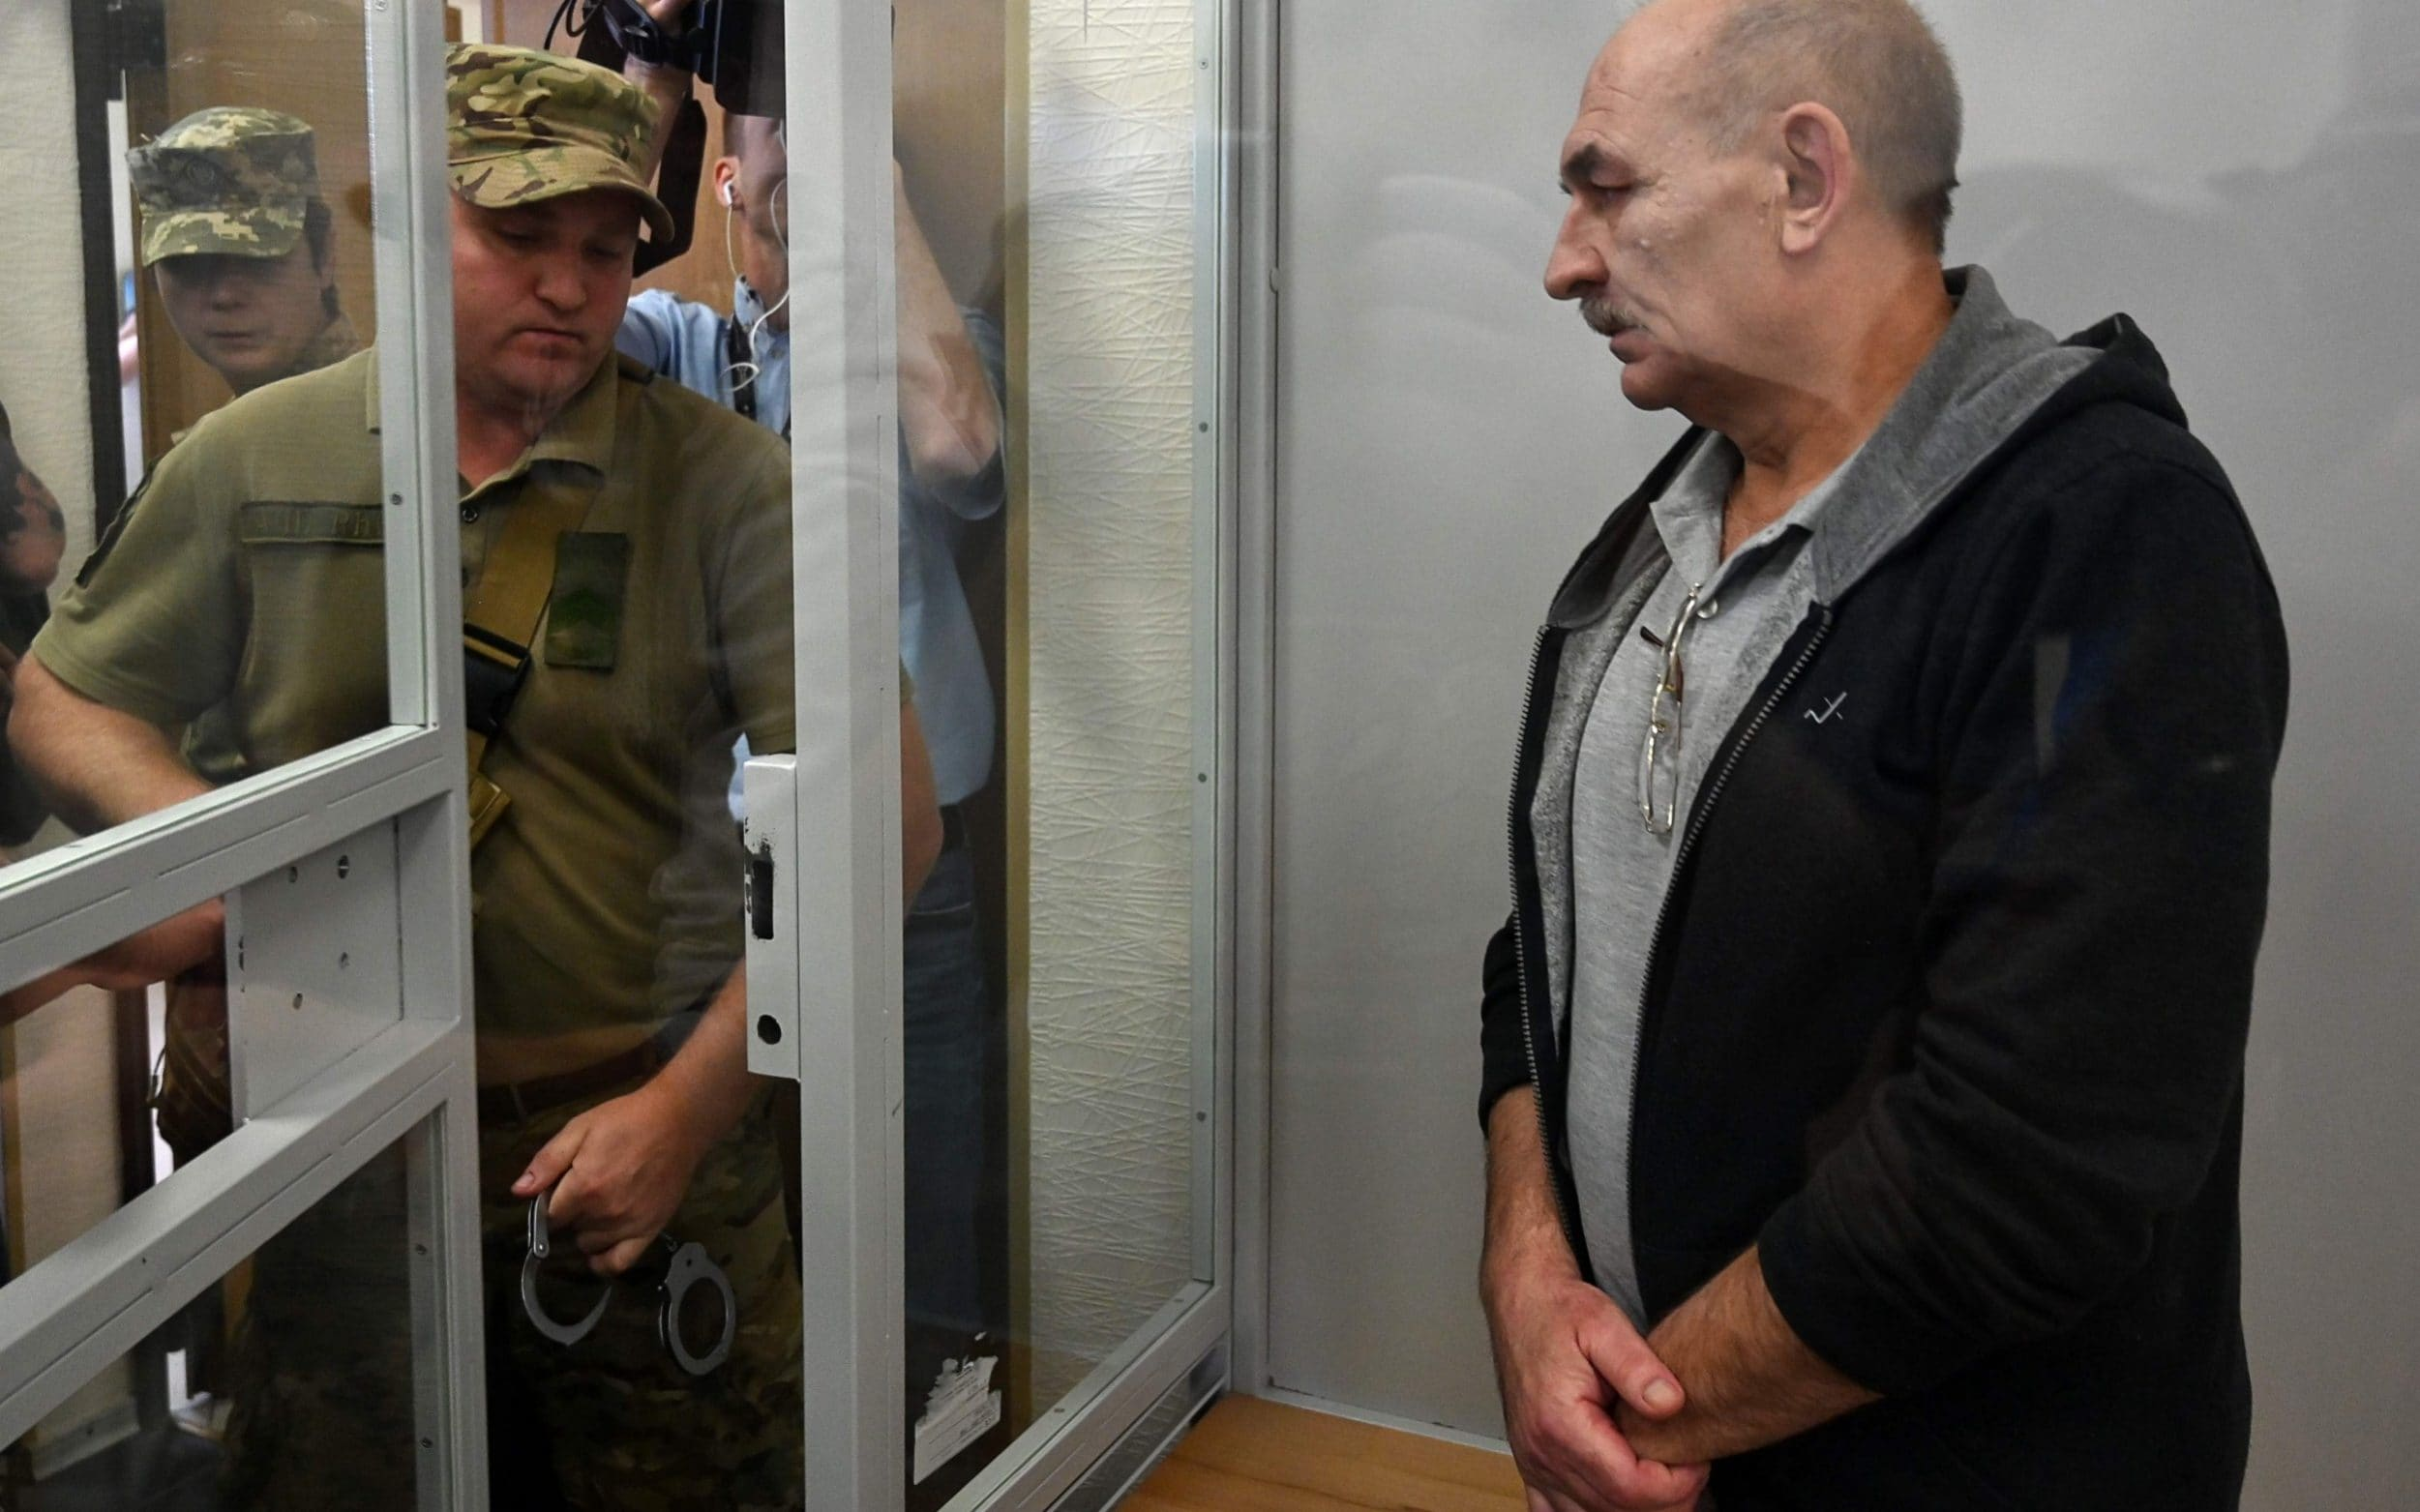 Ukraine releases key MH17 suspect ahead of expected prisoner swap with Russia